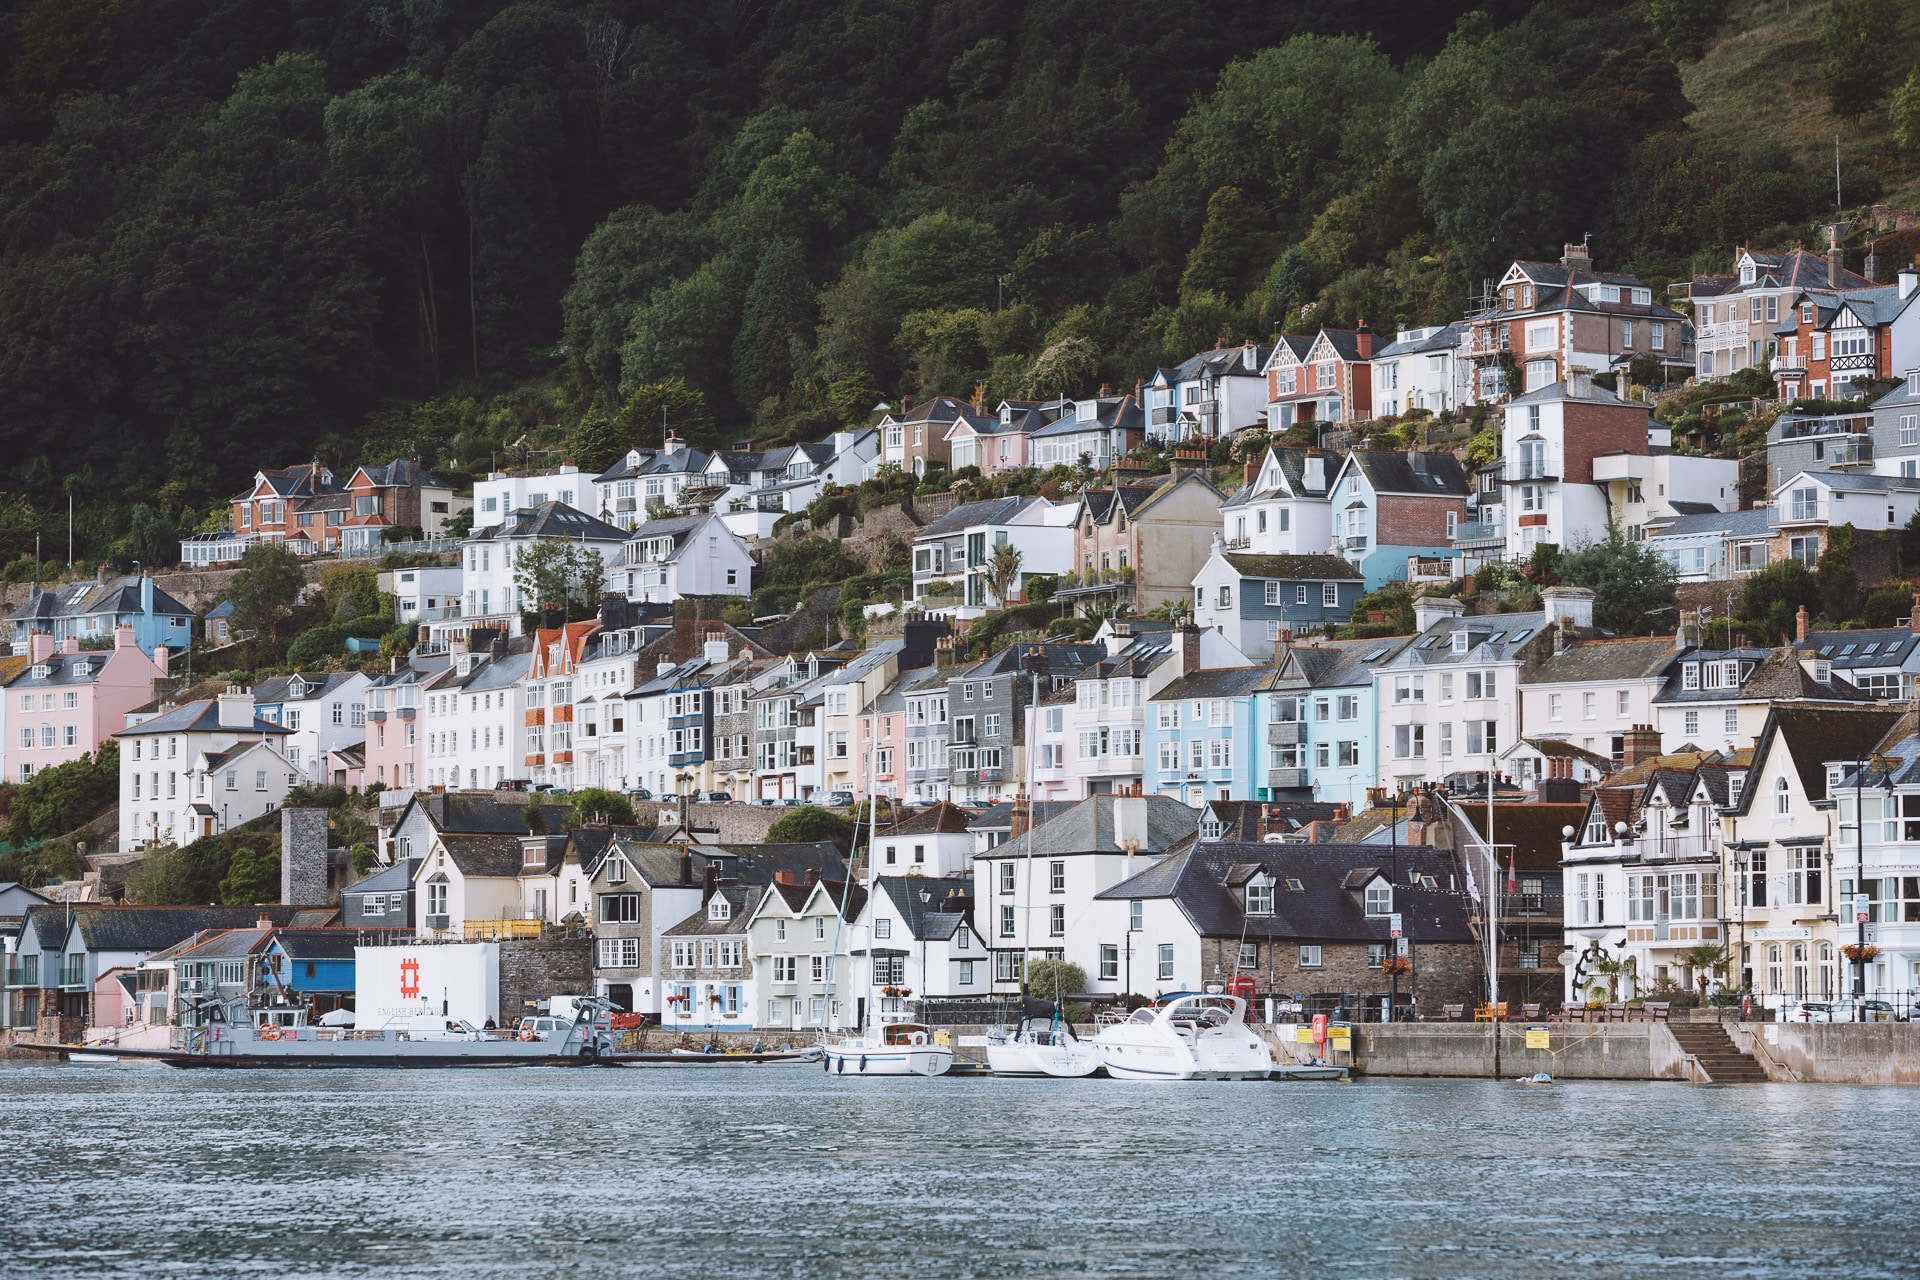 Dartmouth harbour and town